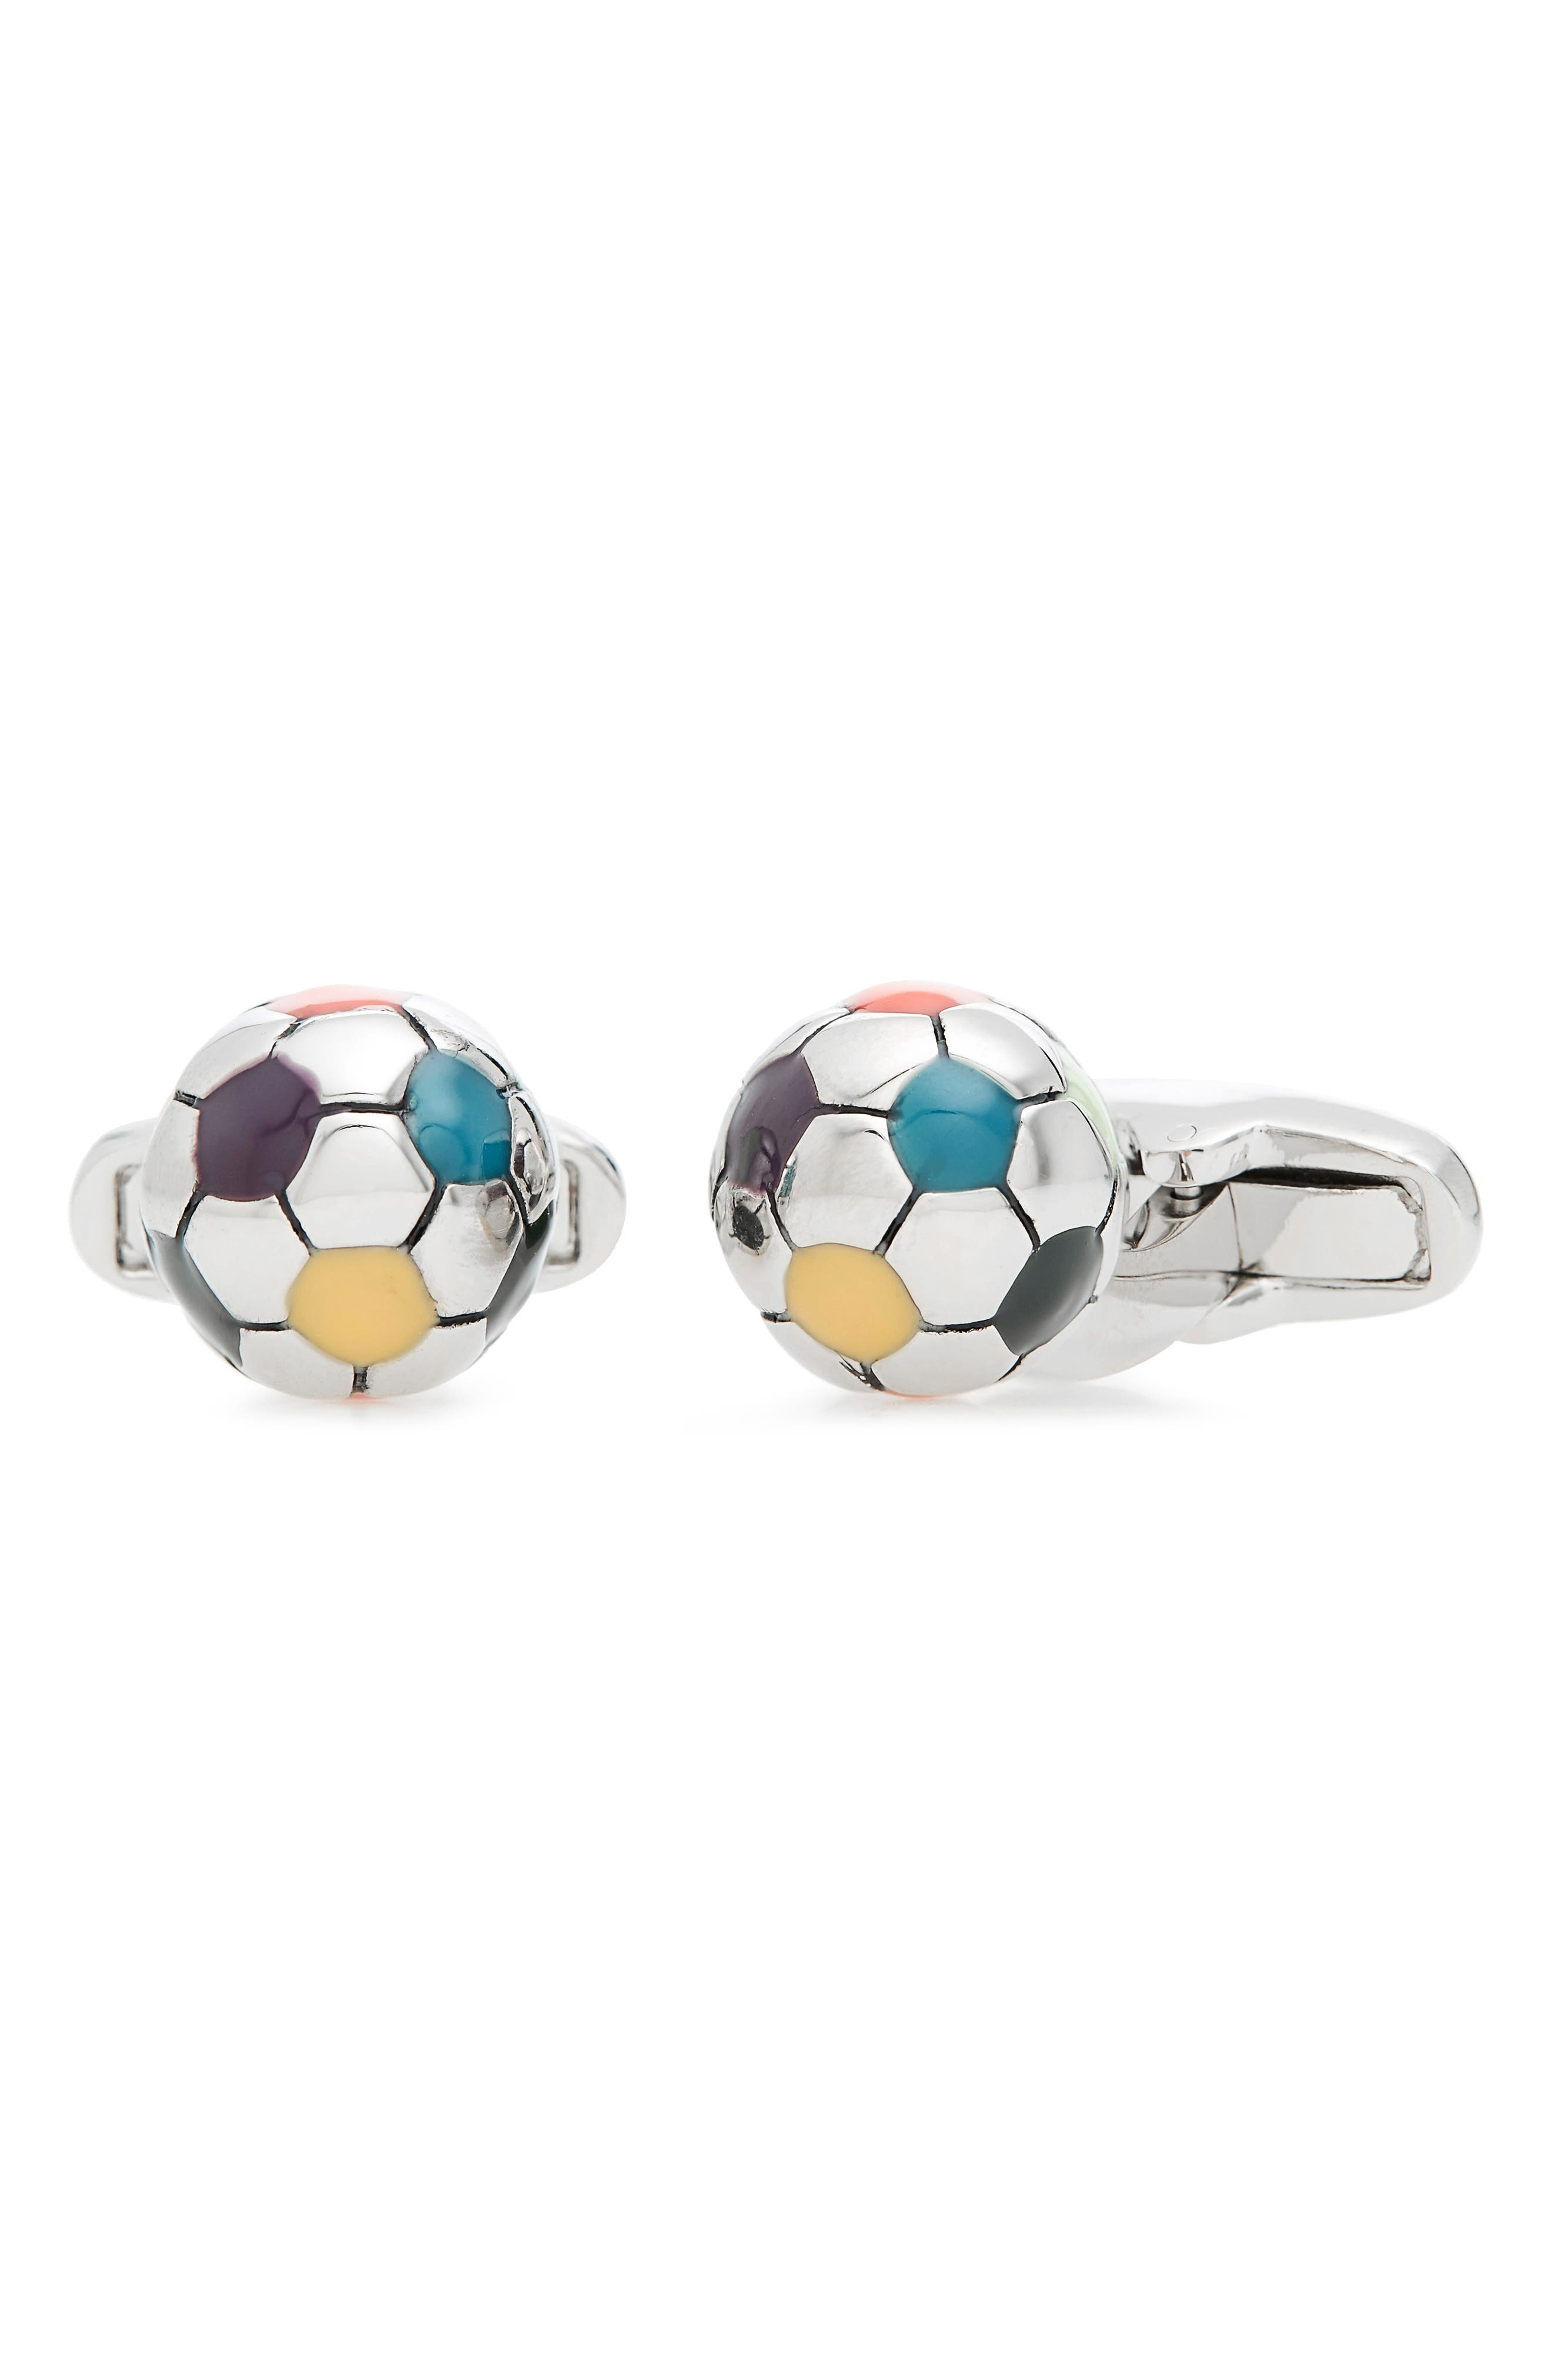 Football Cuff Links,                             Main thumbnail 1, color,                             COPPER